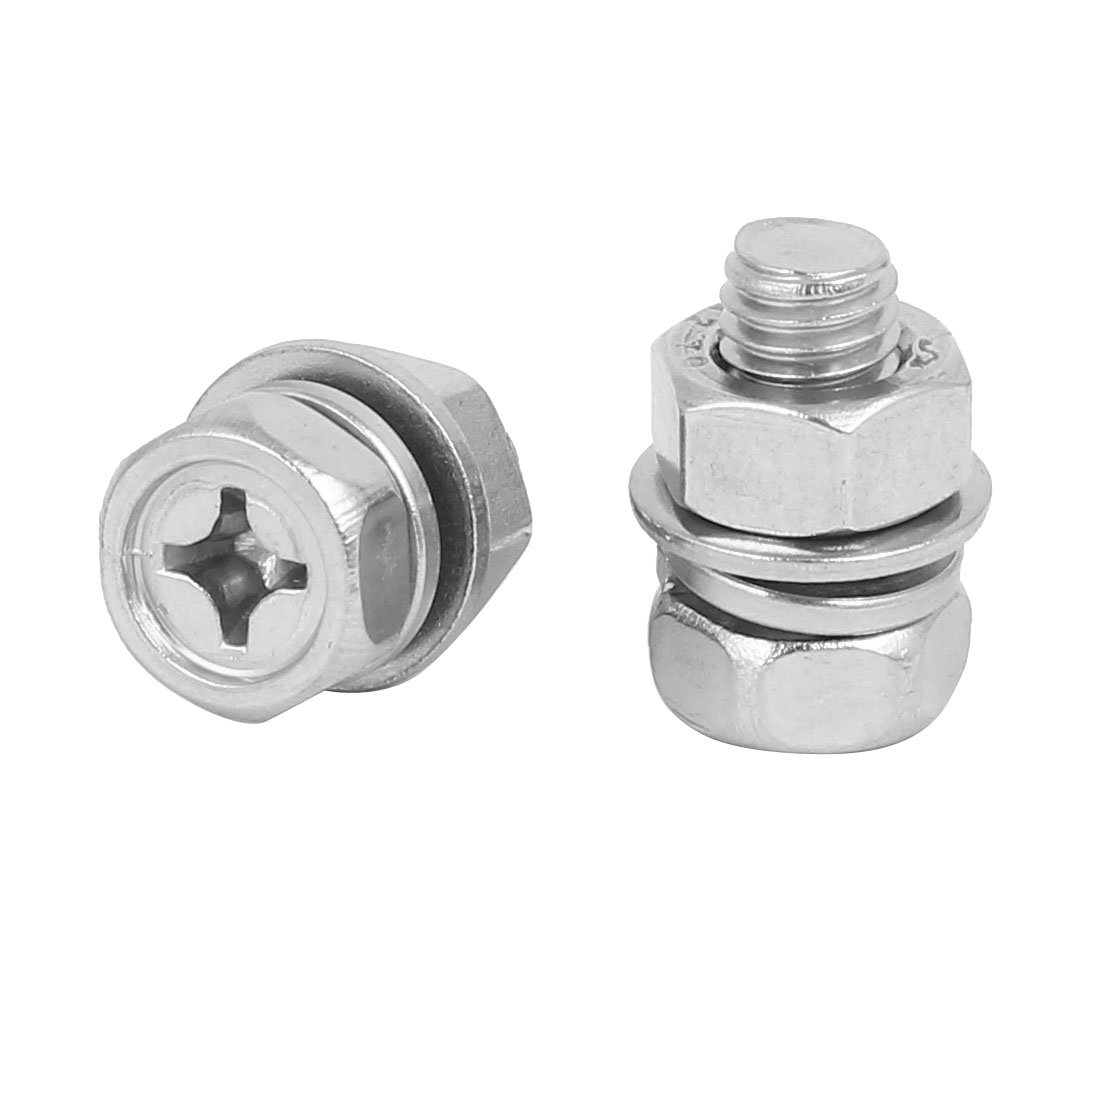 uxcell M8 x 16mm 304 Stainless Steel Phillips Hex Head Bolts Nuts w Washers 5 Sets SYNCTEA046495